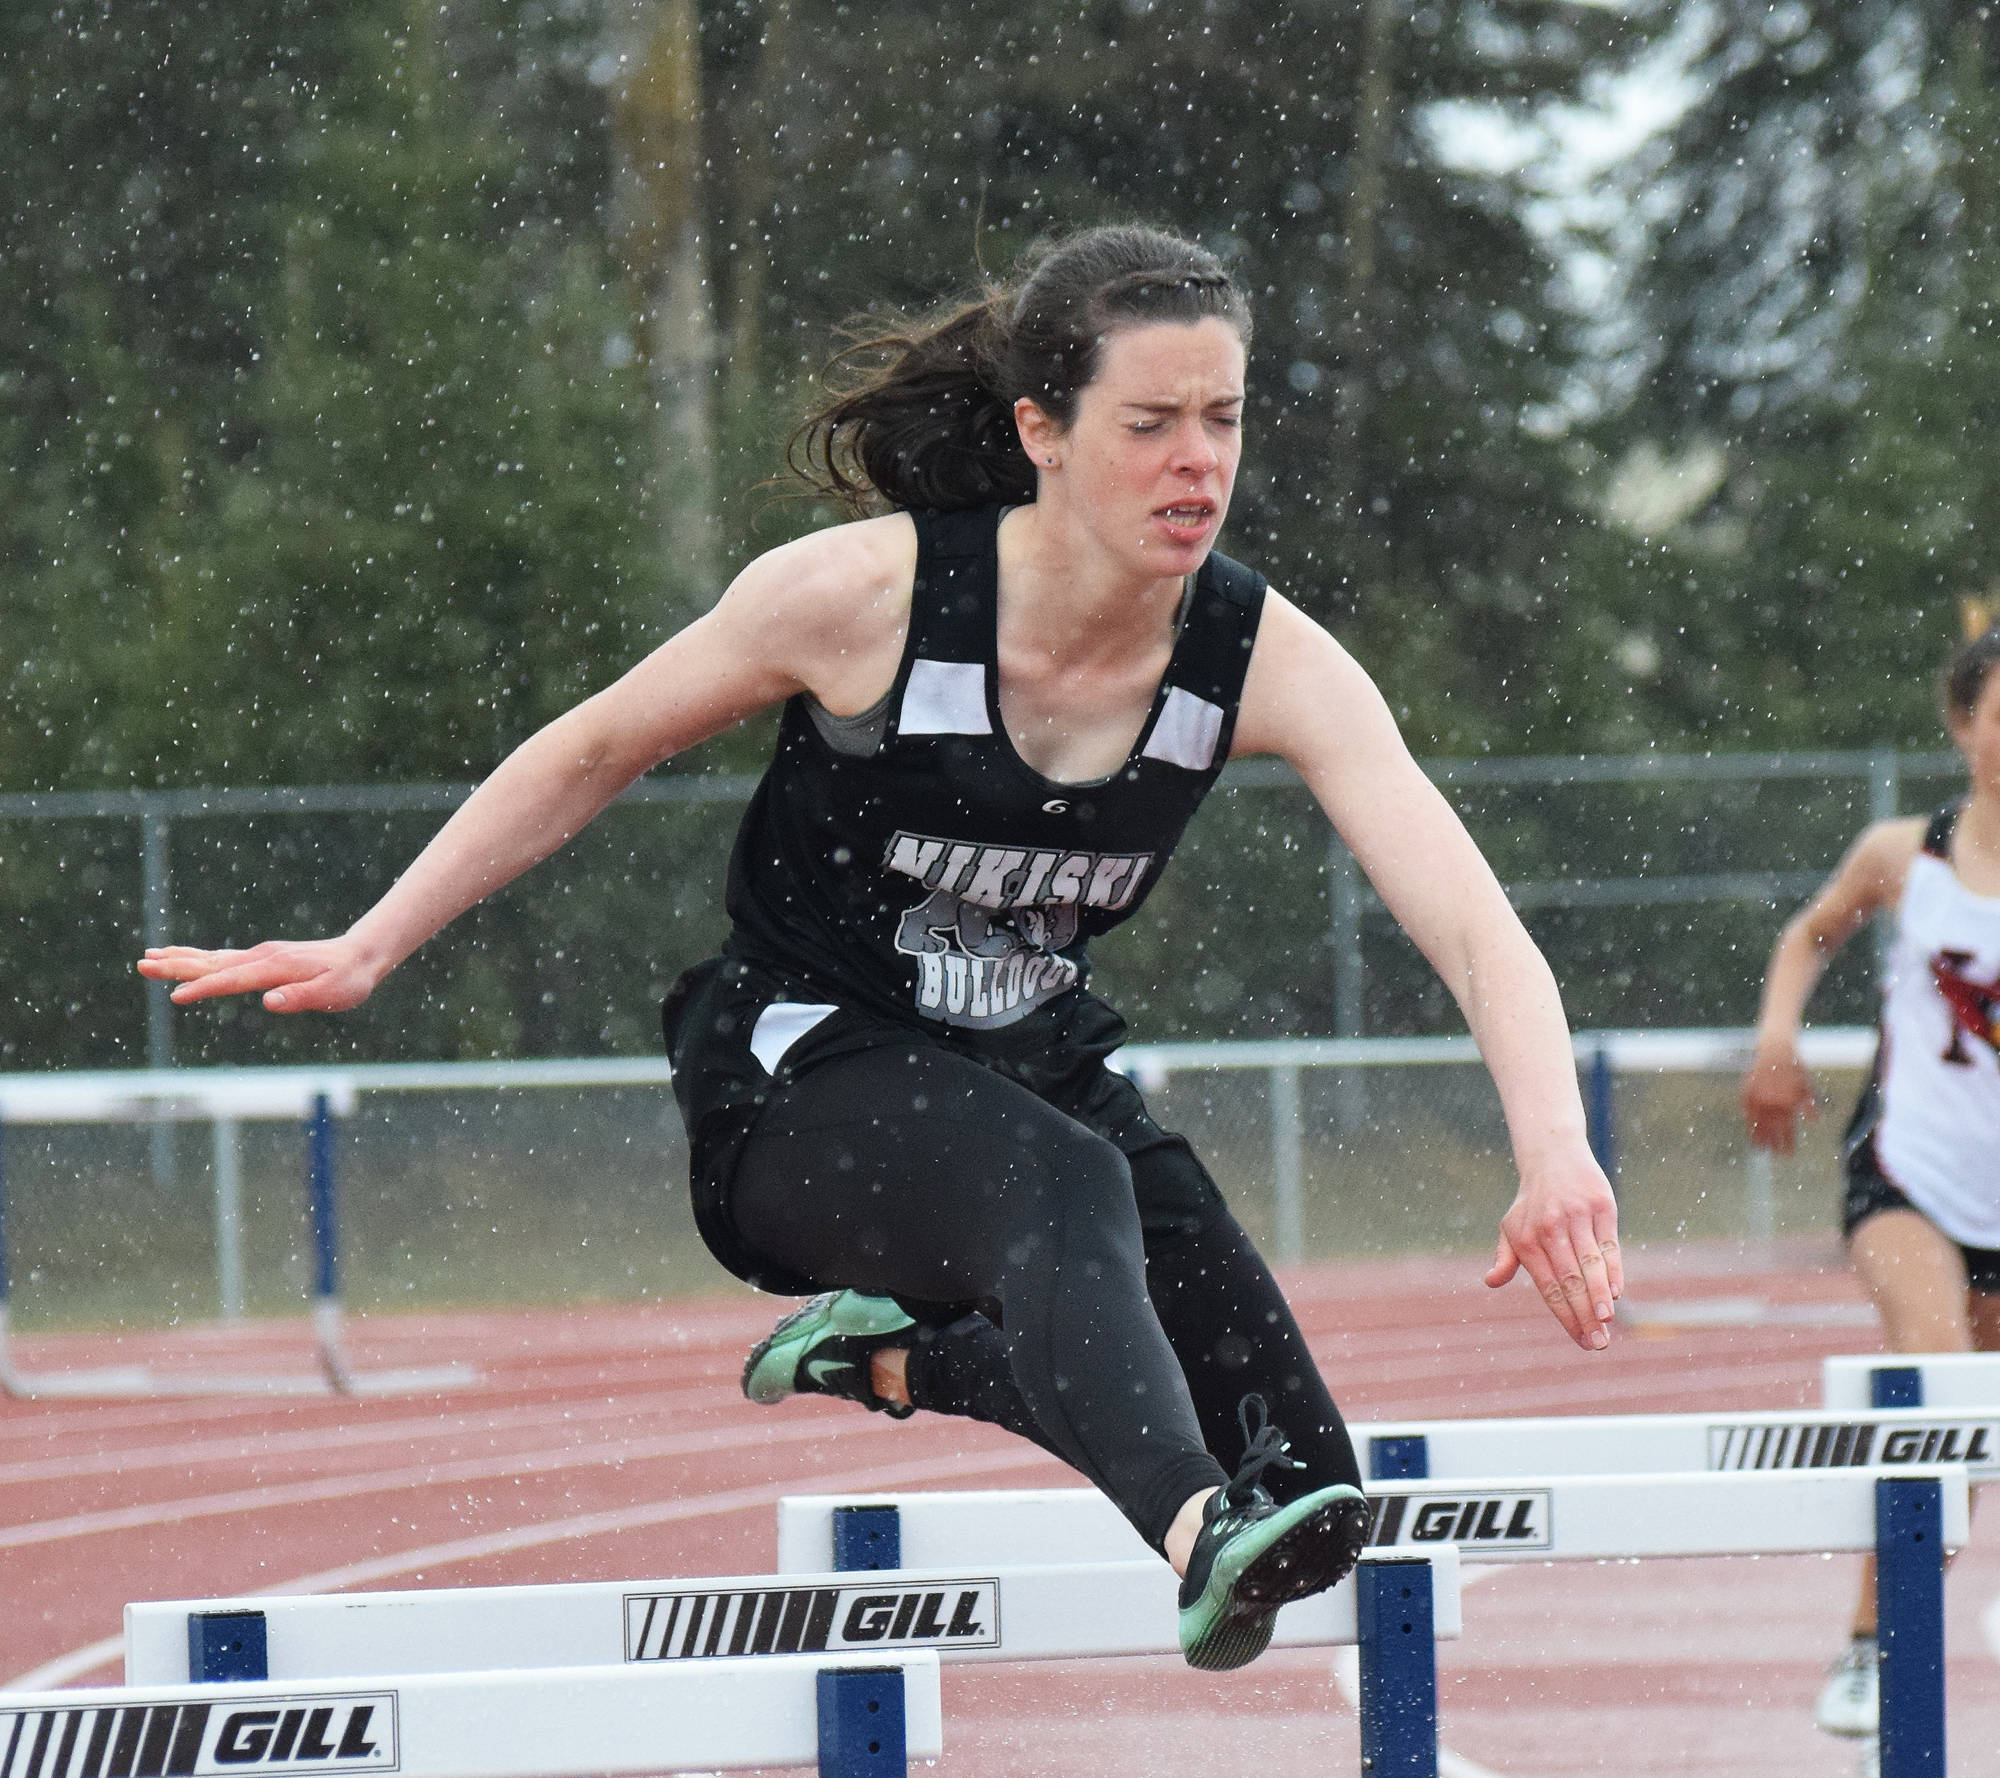 Nikiski senior Crystal Epperheimer leaps a barrier in the girls 300-meter hurdles race Saturday afternoon at the Kenai Peninsula Borough track and field championships at Justin Maile Field in Soldotna. (Photo by Joey Klecka/Peninsula Clarion)